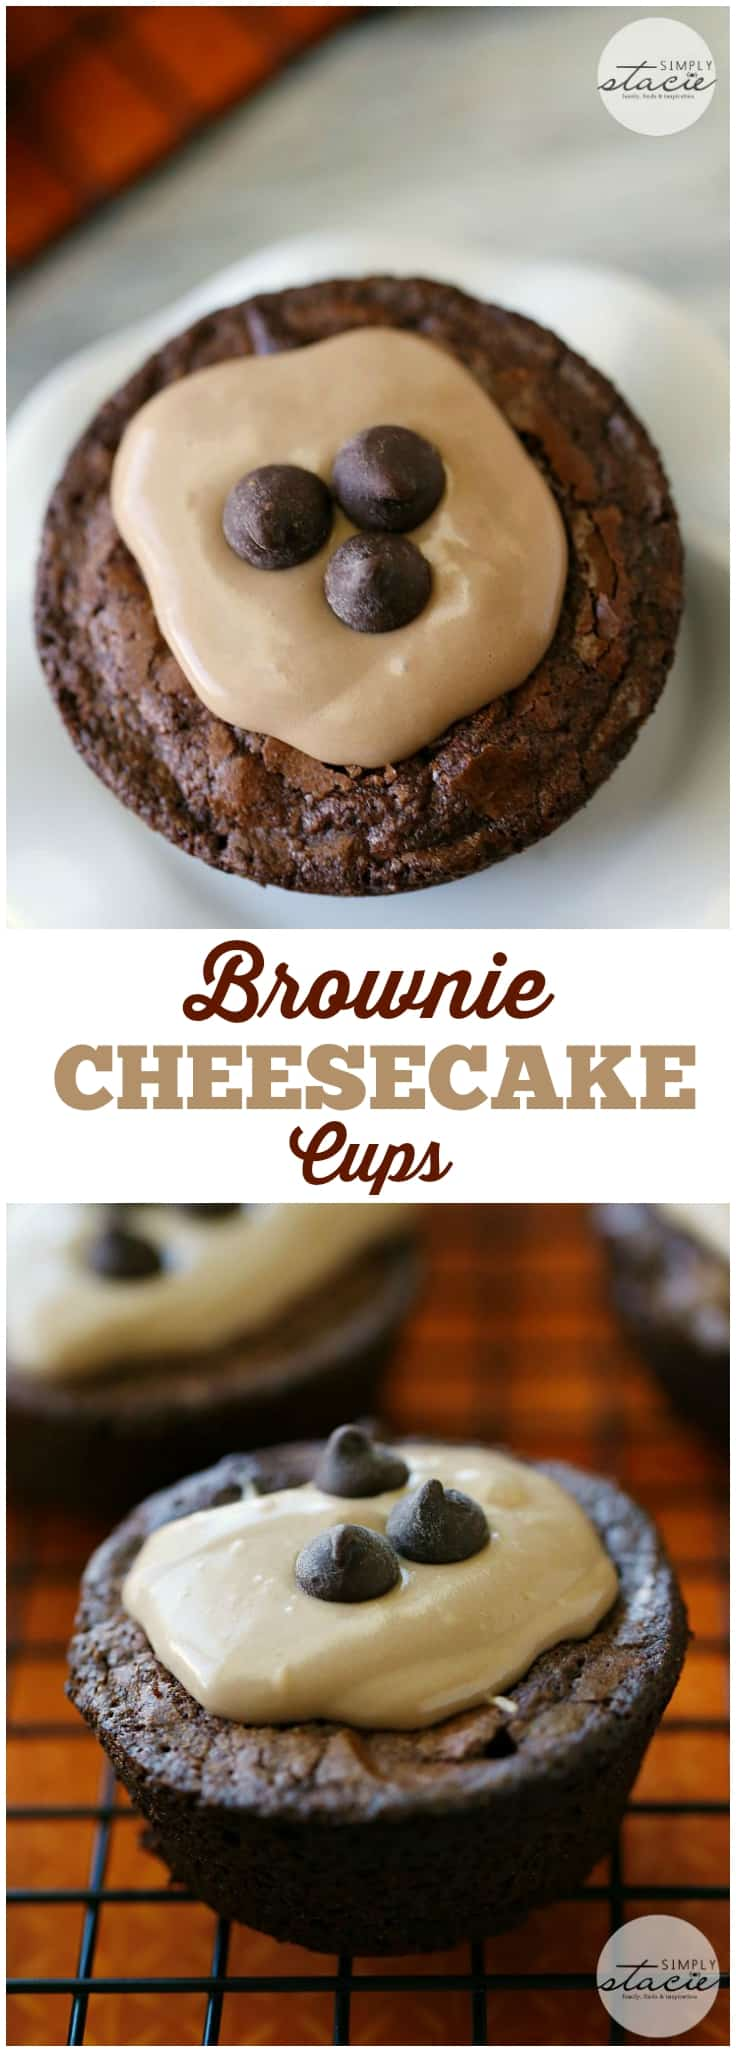 Brownie Cheesecake Cups - A dessert made from a box of brownie mix. It's easy to make and a delight to eat!